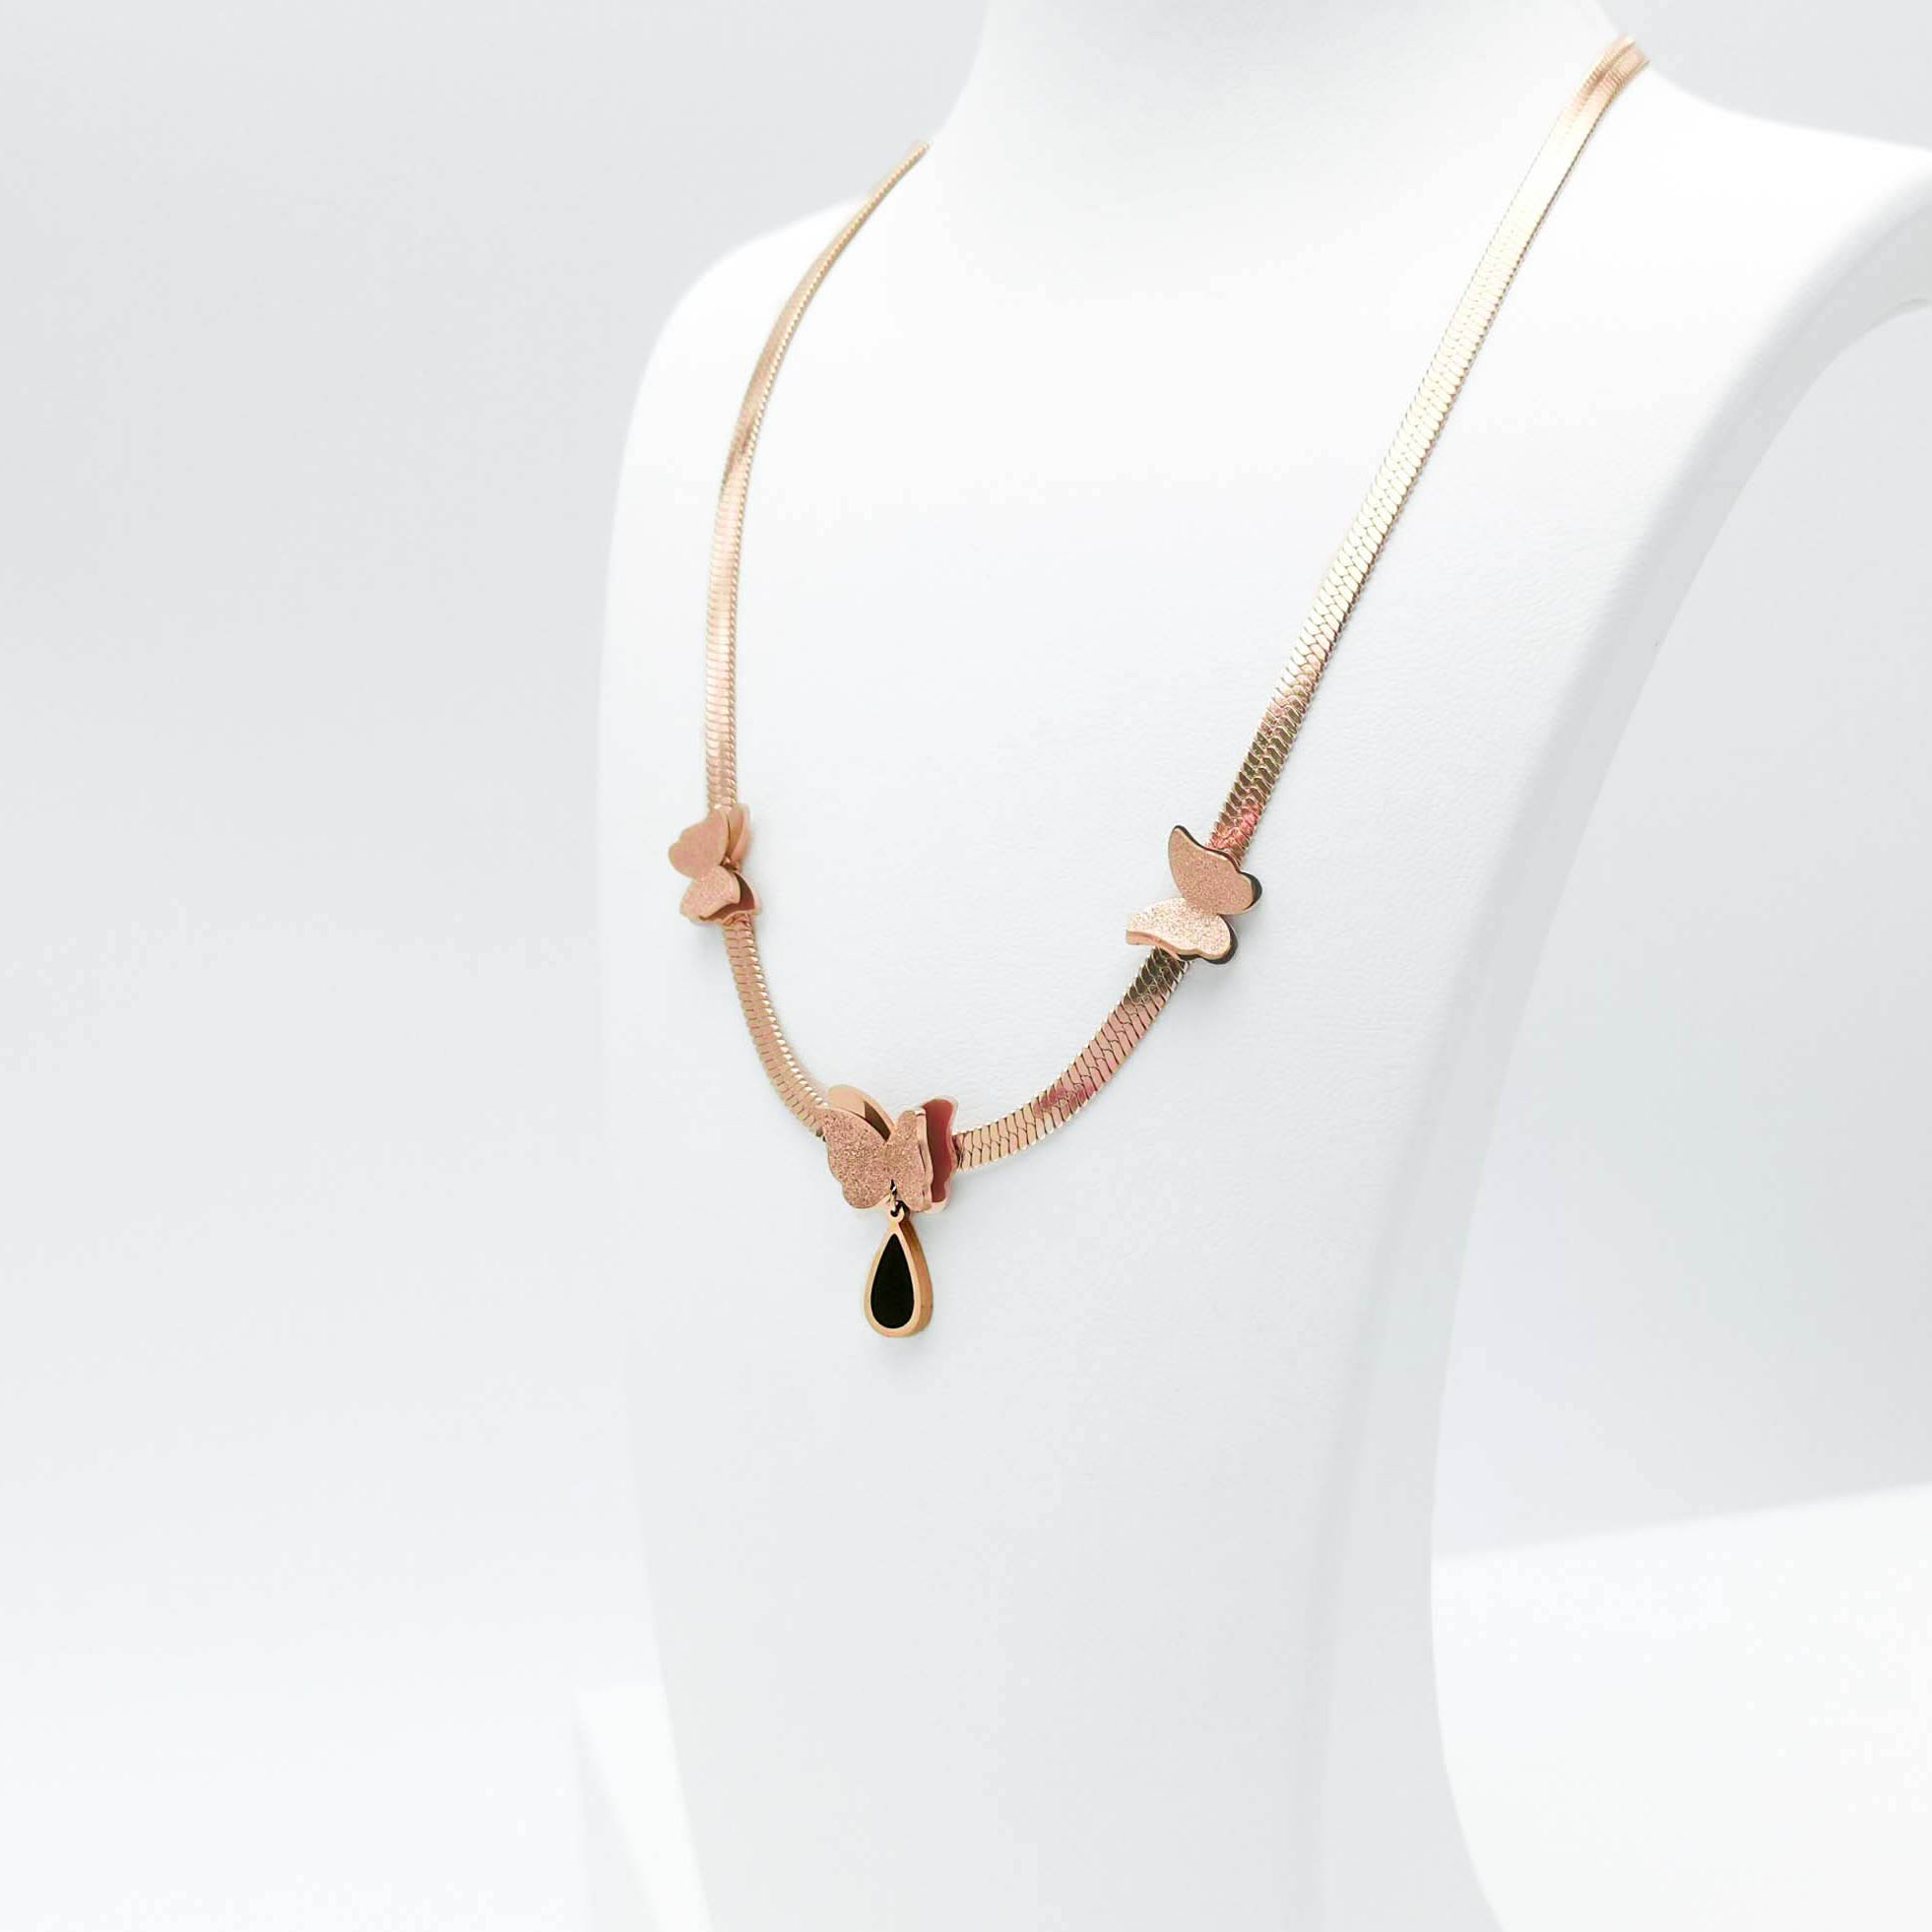 1- Queen Butterfly Ultimate Beauty Halsband Modern and trendy Necklace and women jewelry and accessories from SWEVALI fashion Sweden